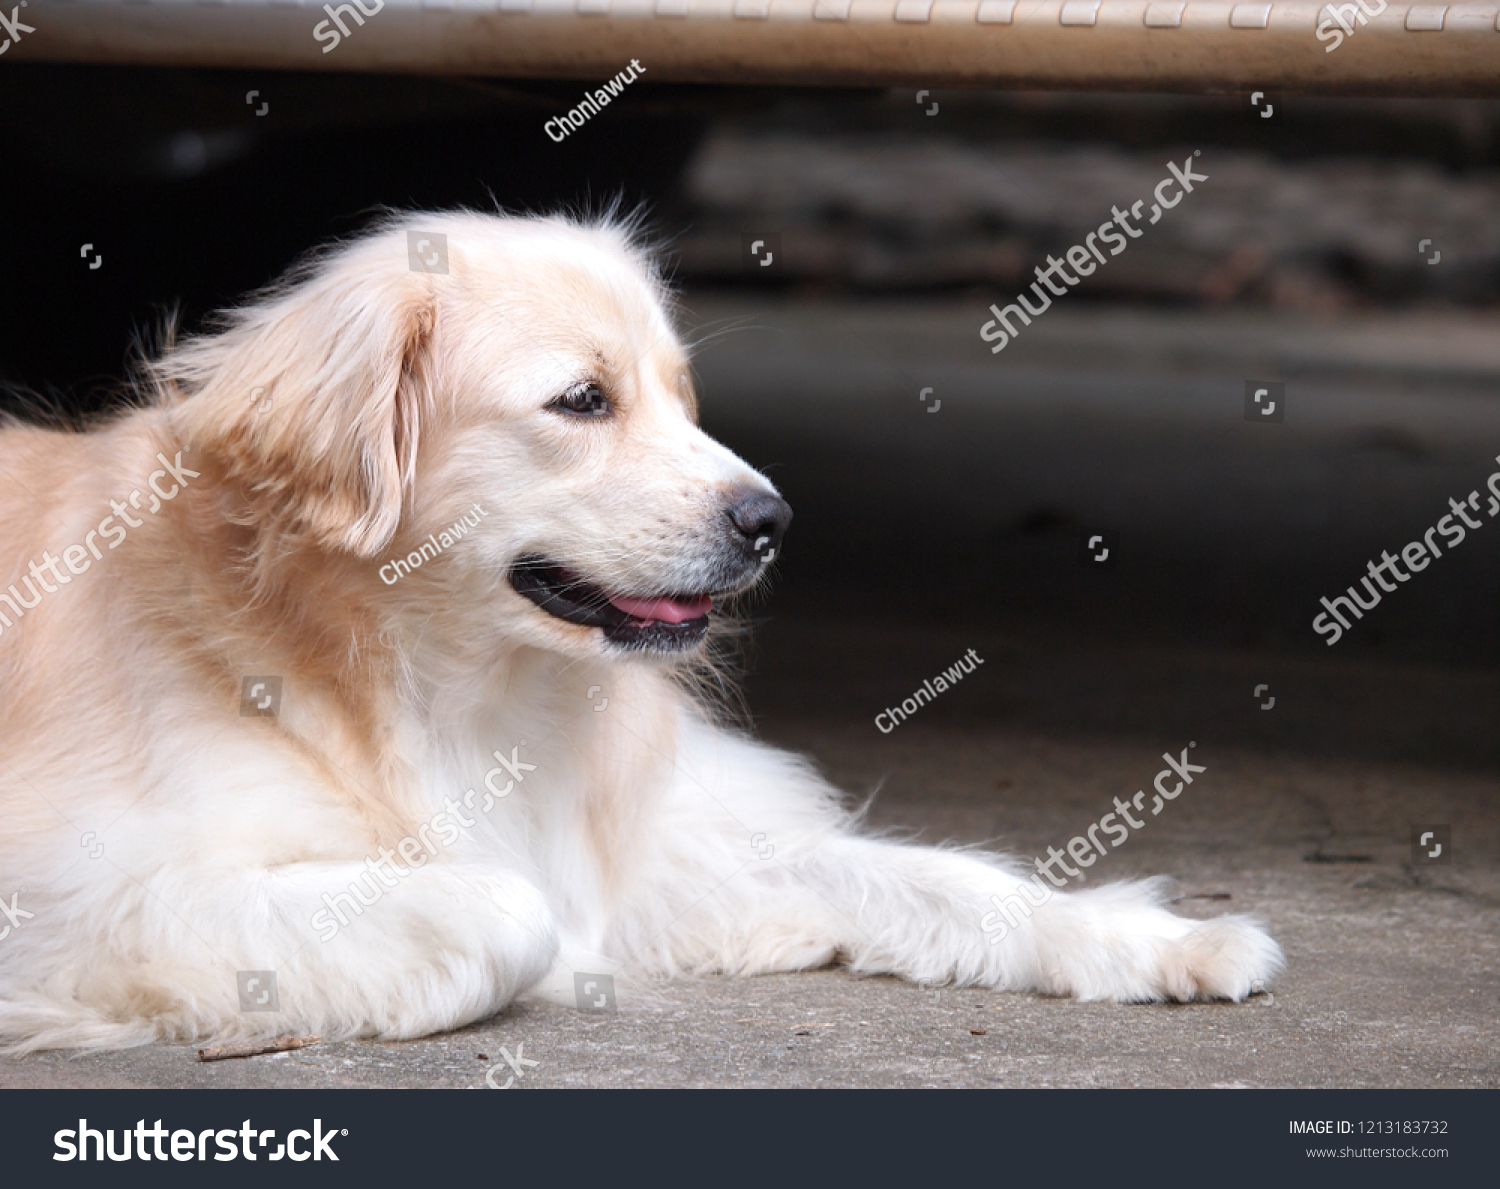 Lonesome lonely sad white cute fat long hair puppy crossbred handsome dog portraits laying outdoor on